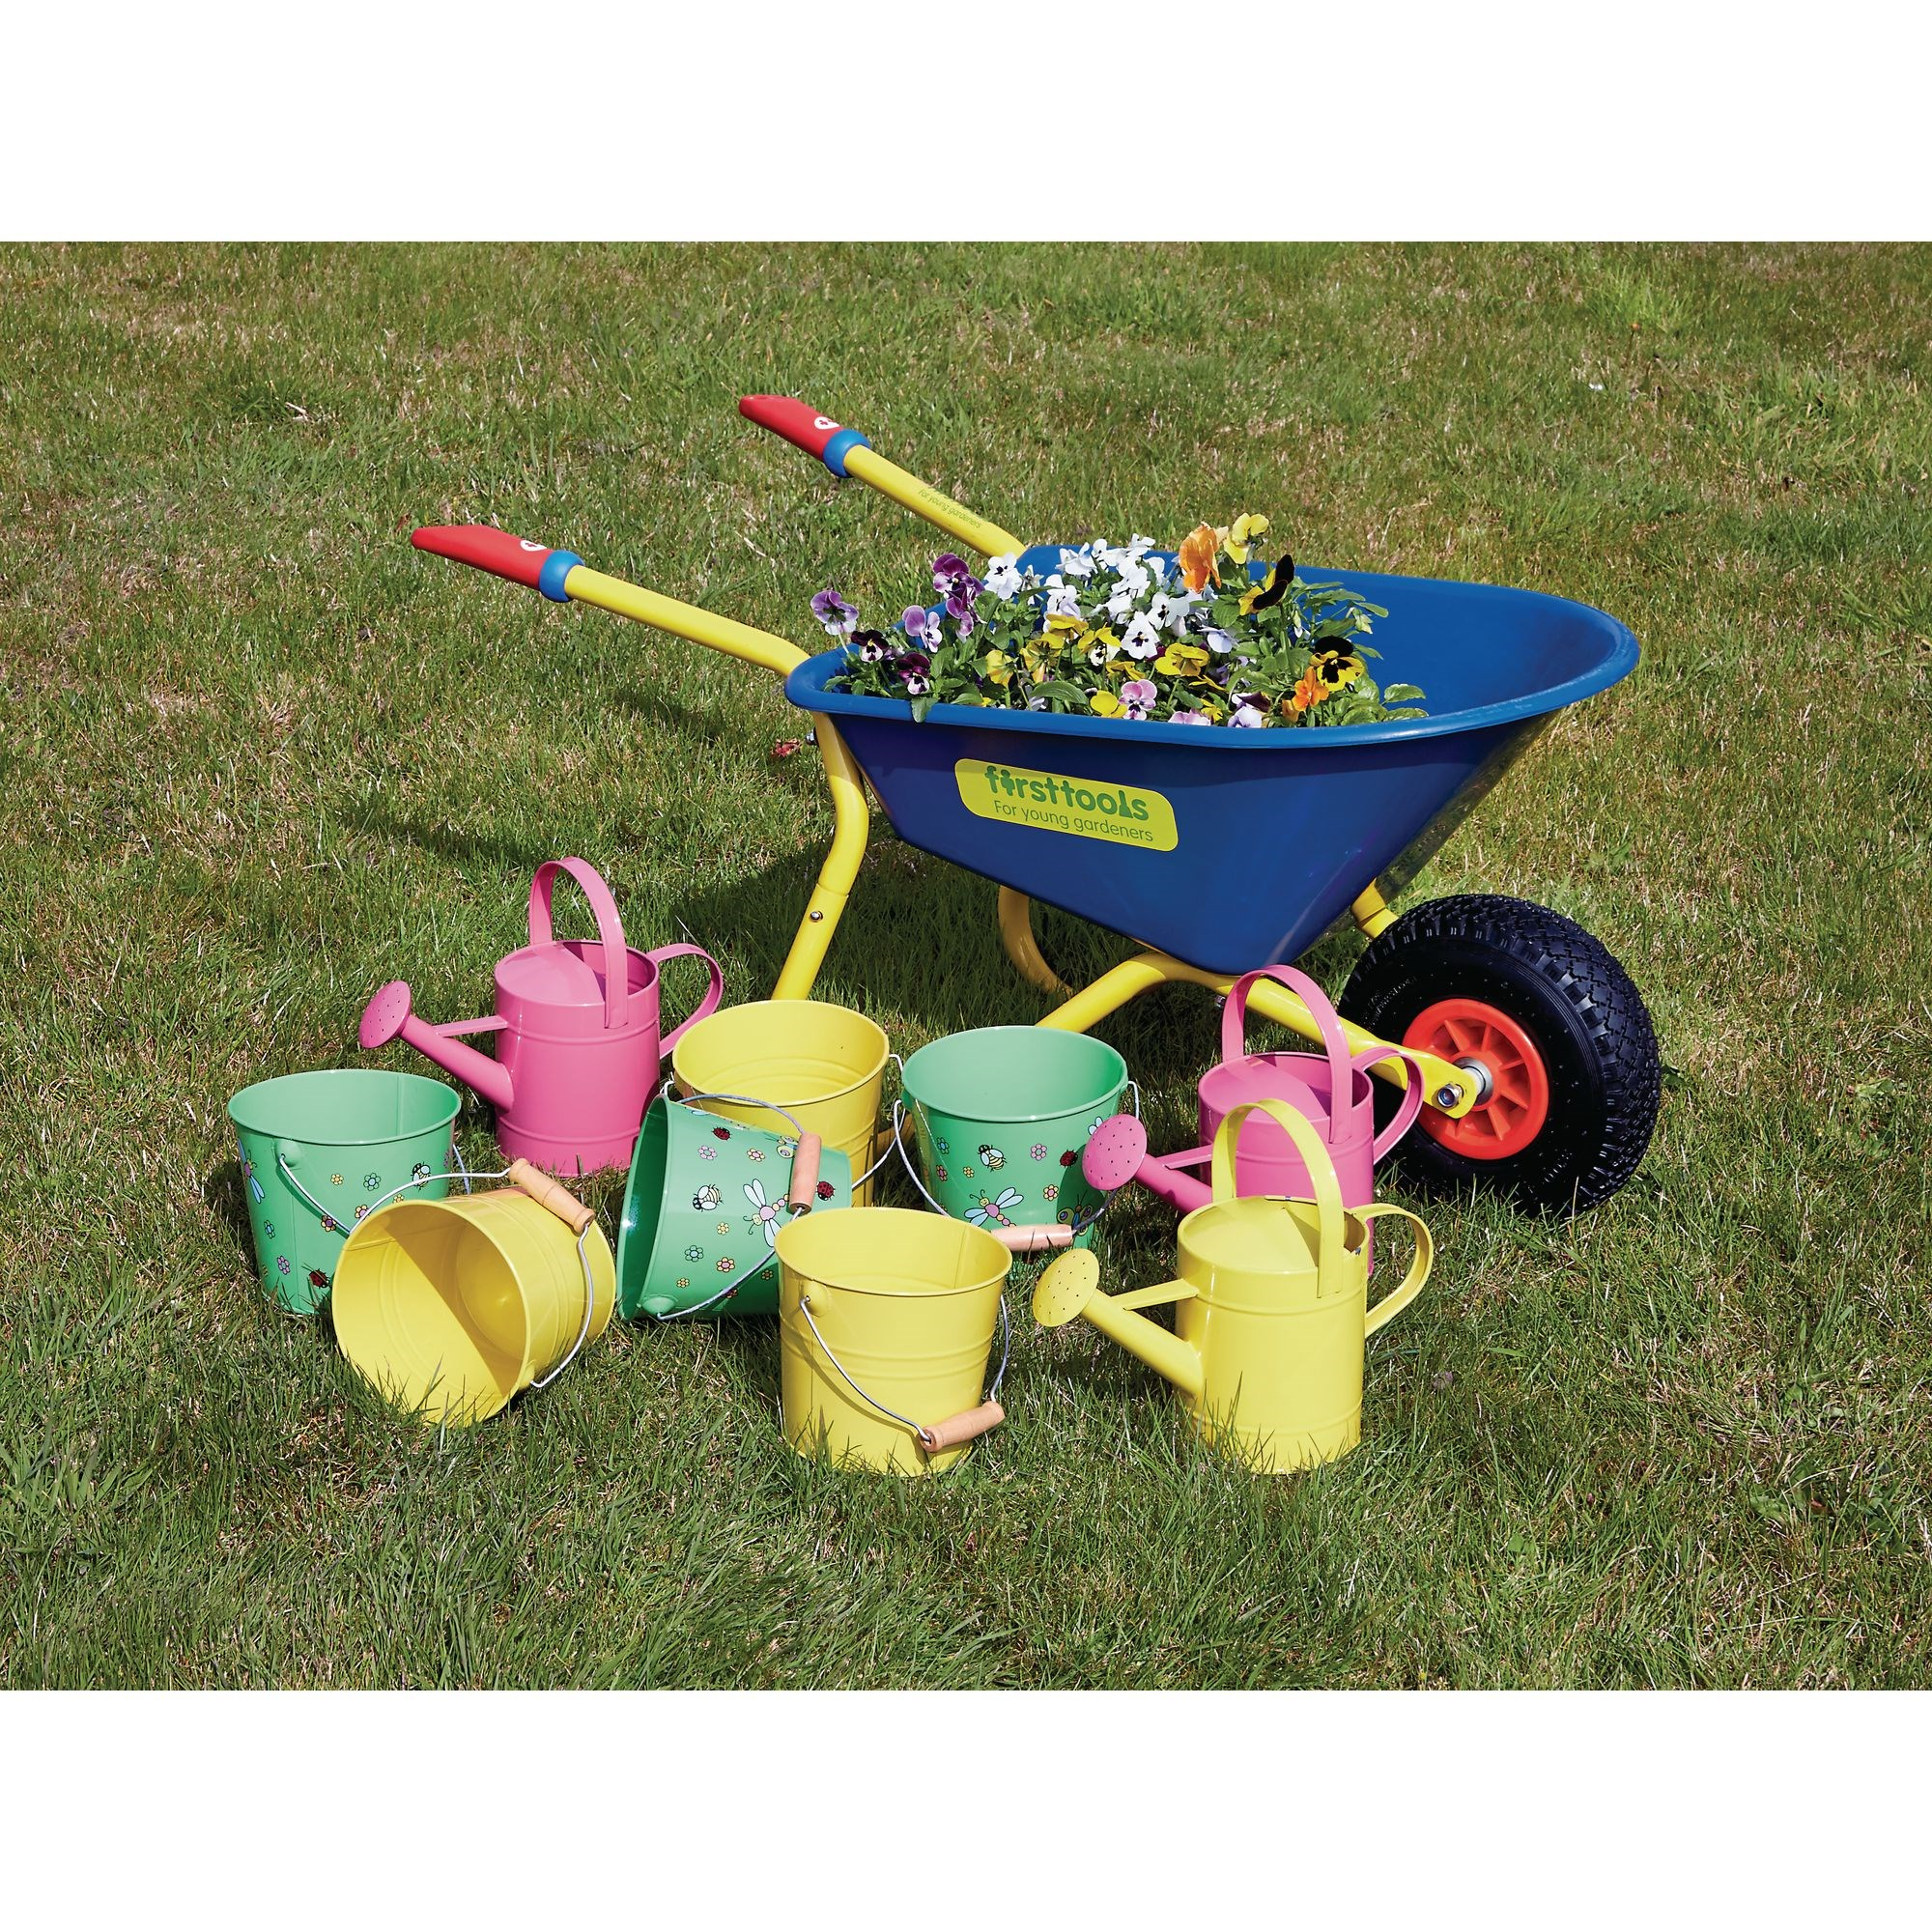 First Tools Wheelbarrow